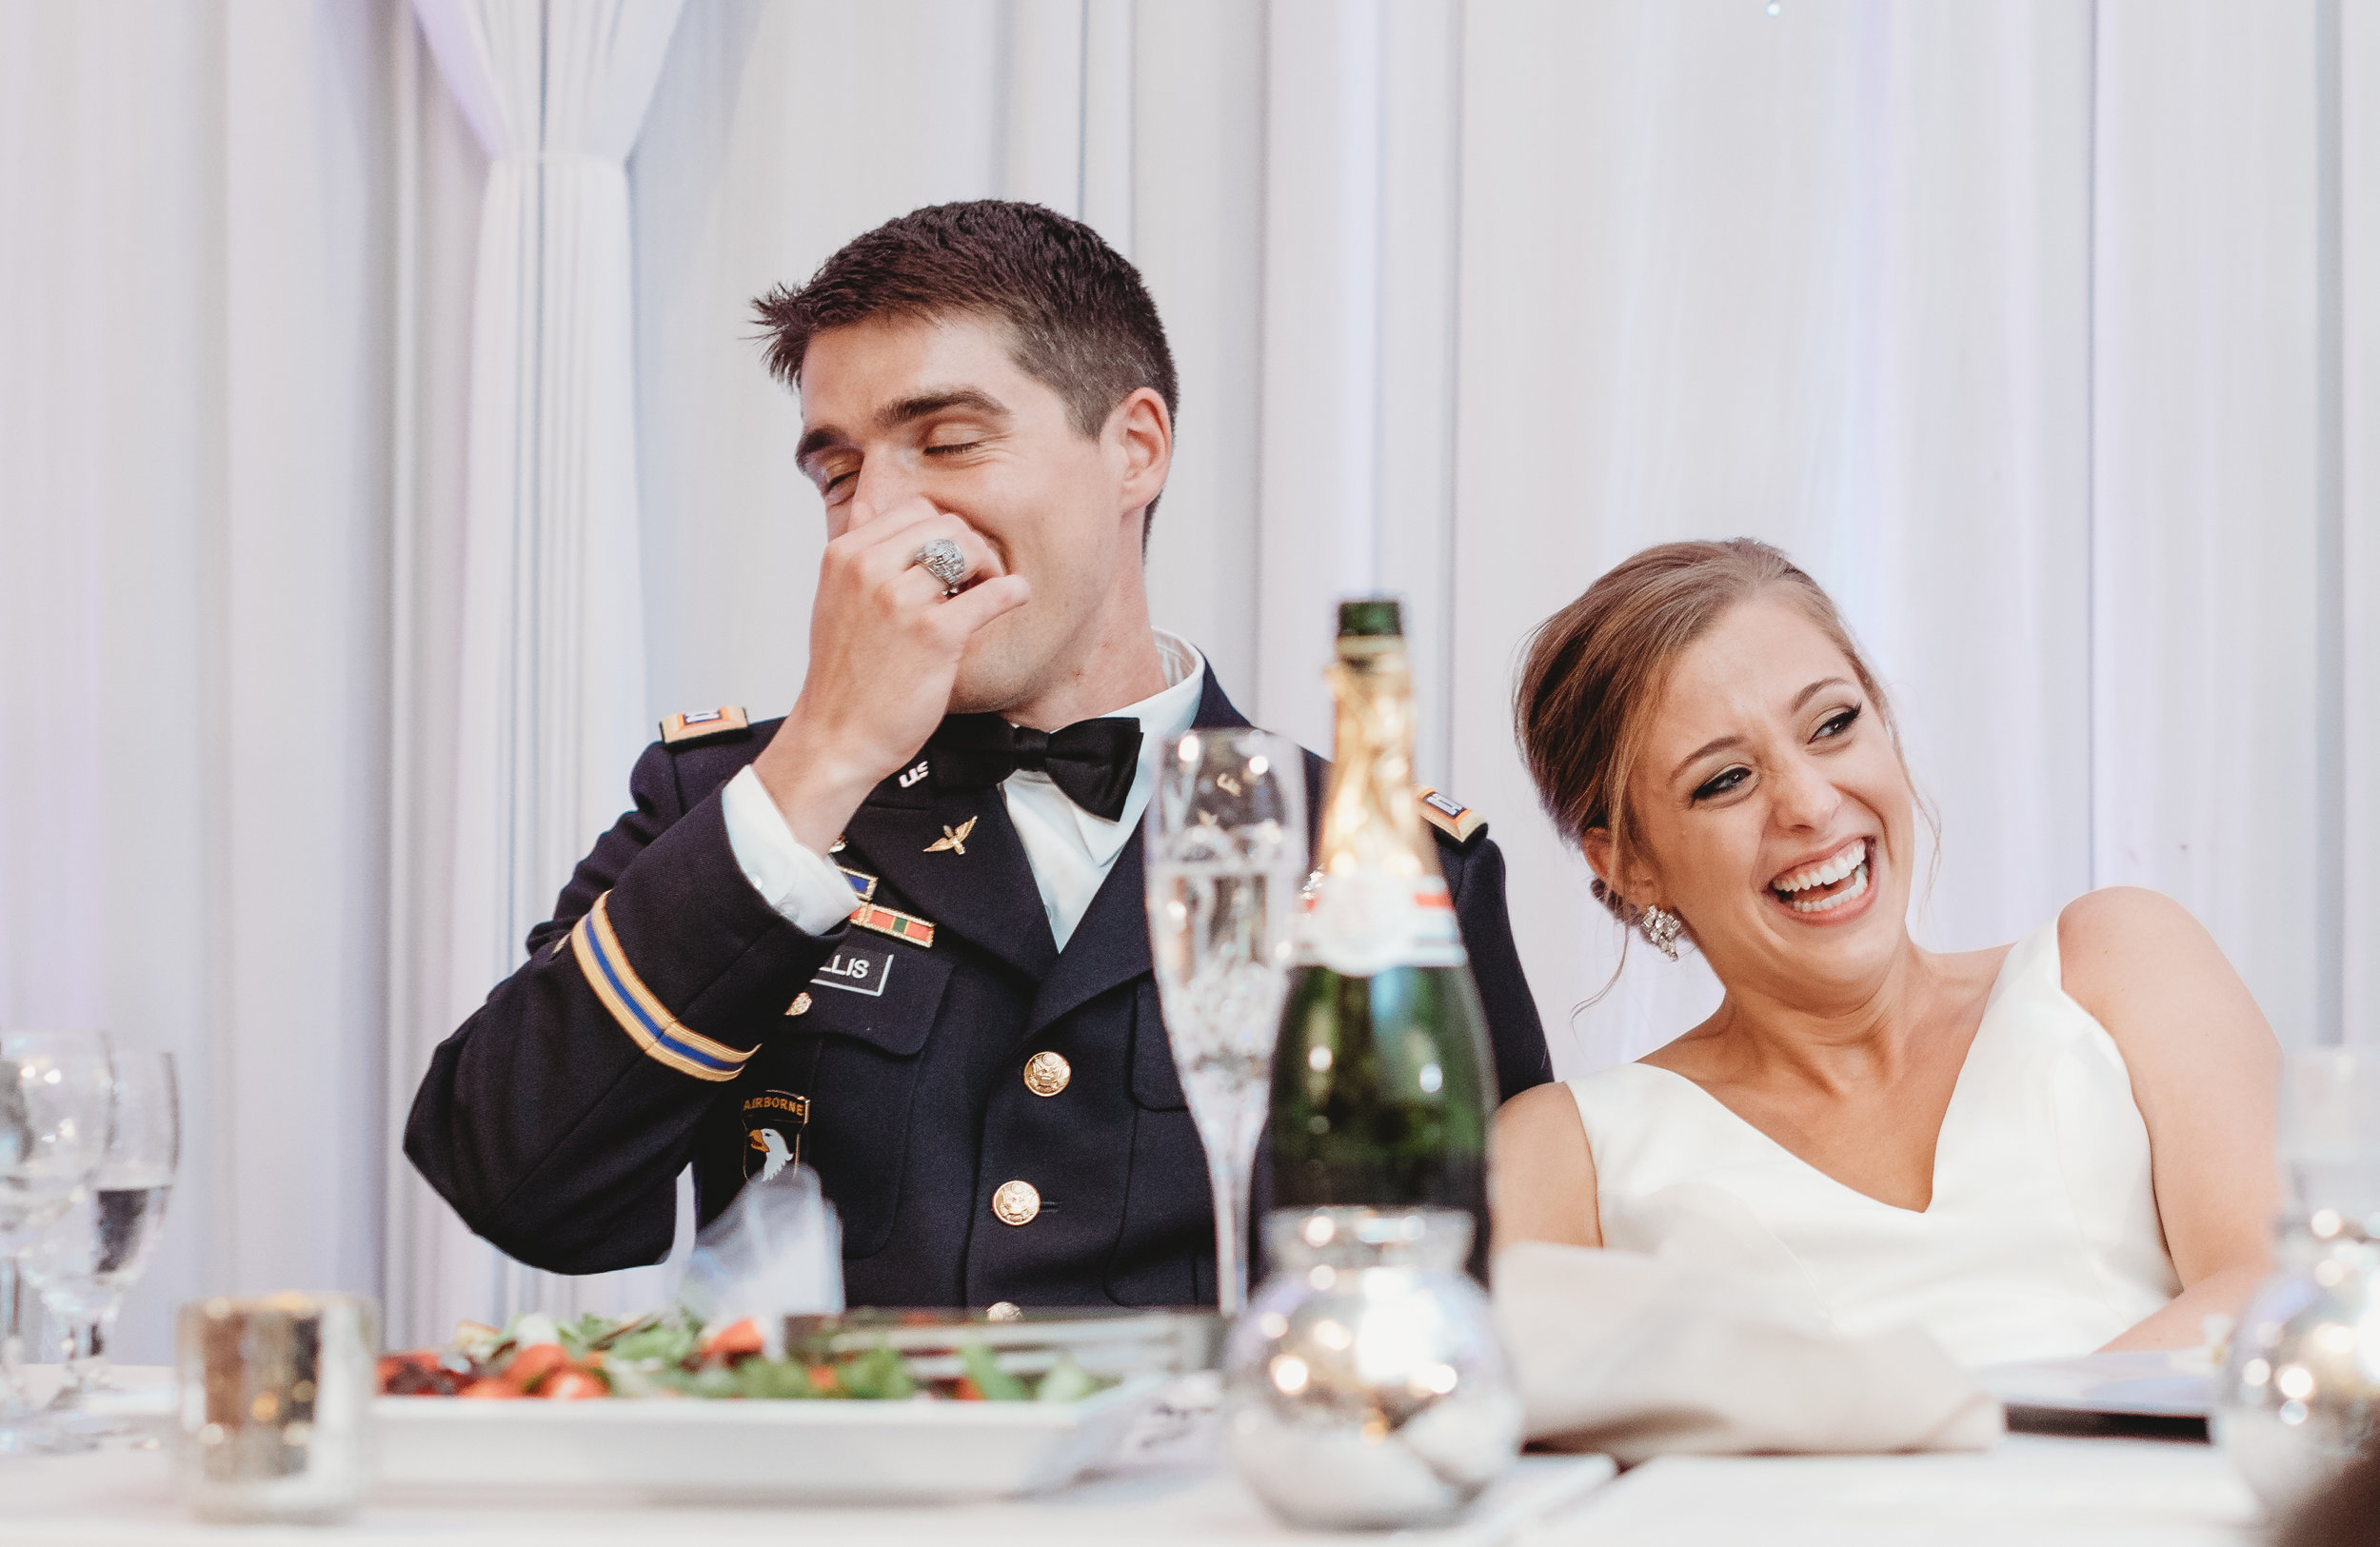 Bride-and-groom-laughing-during-speeches.jpg